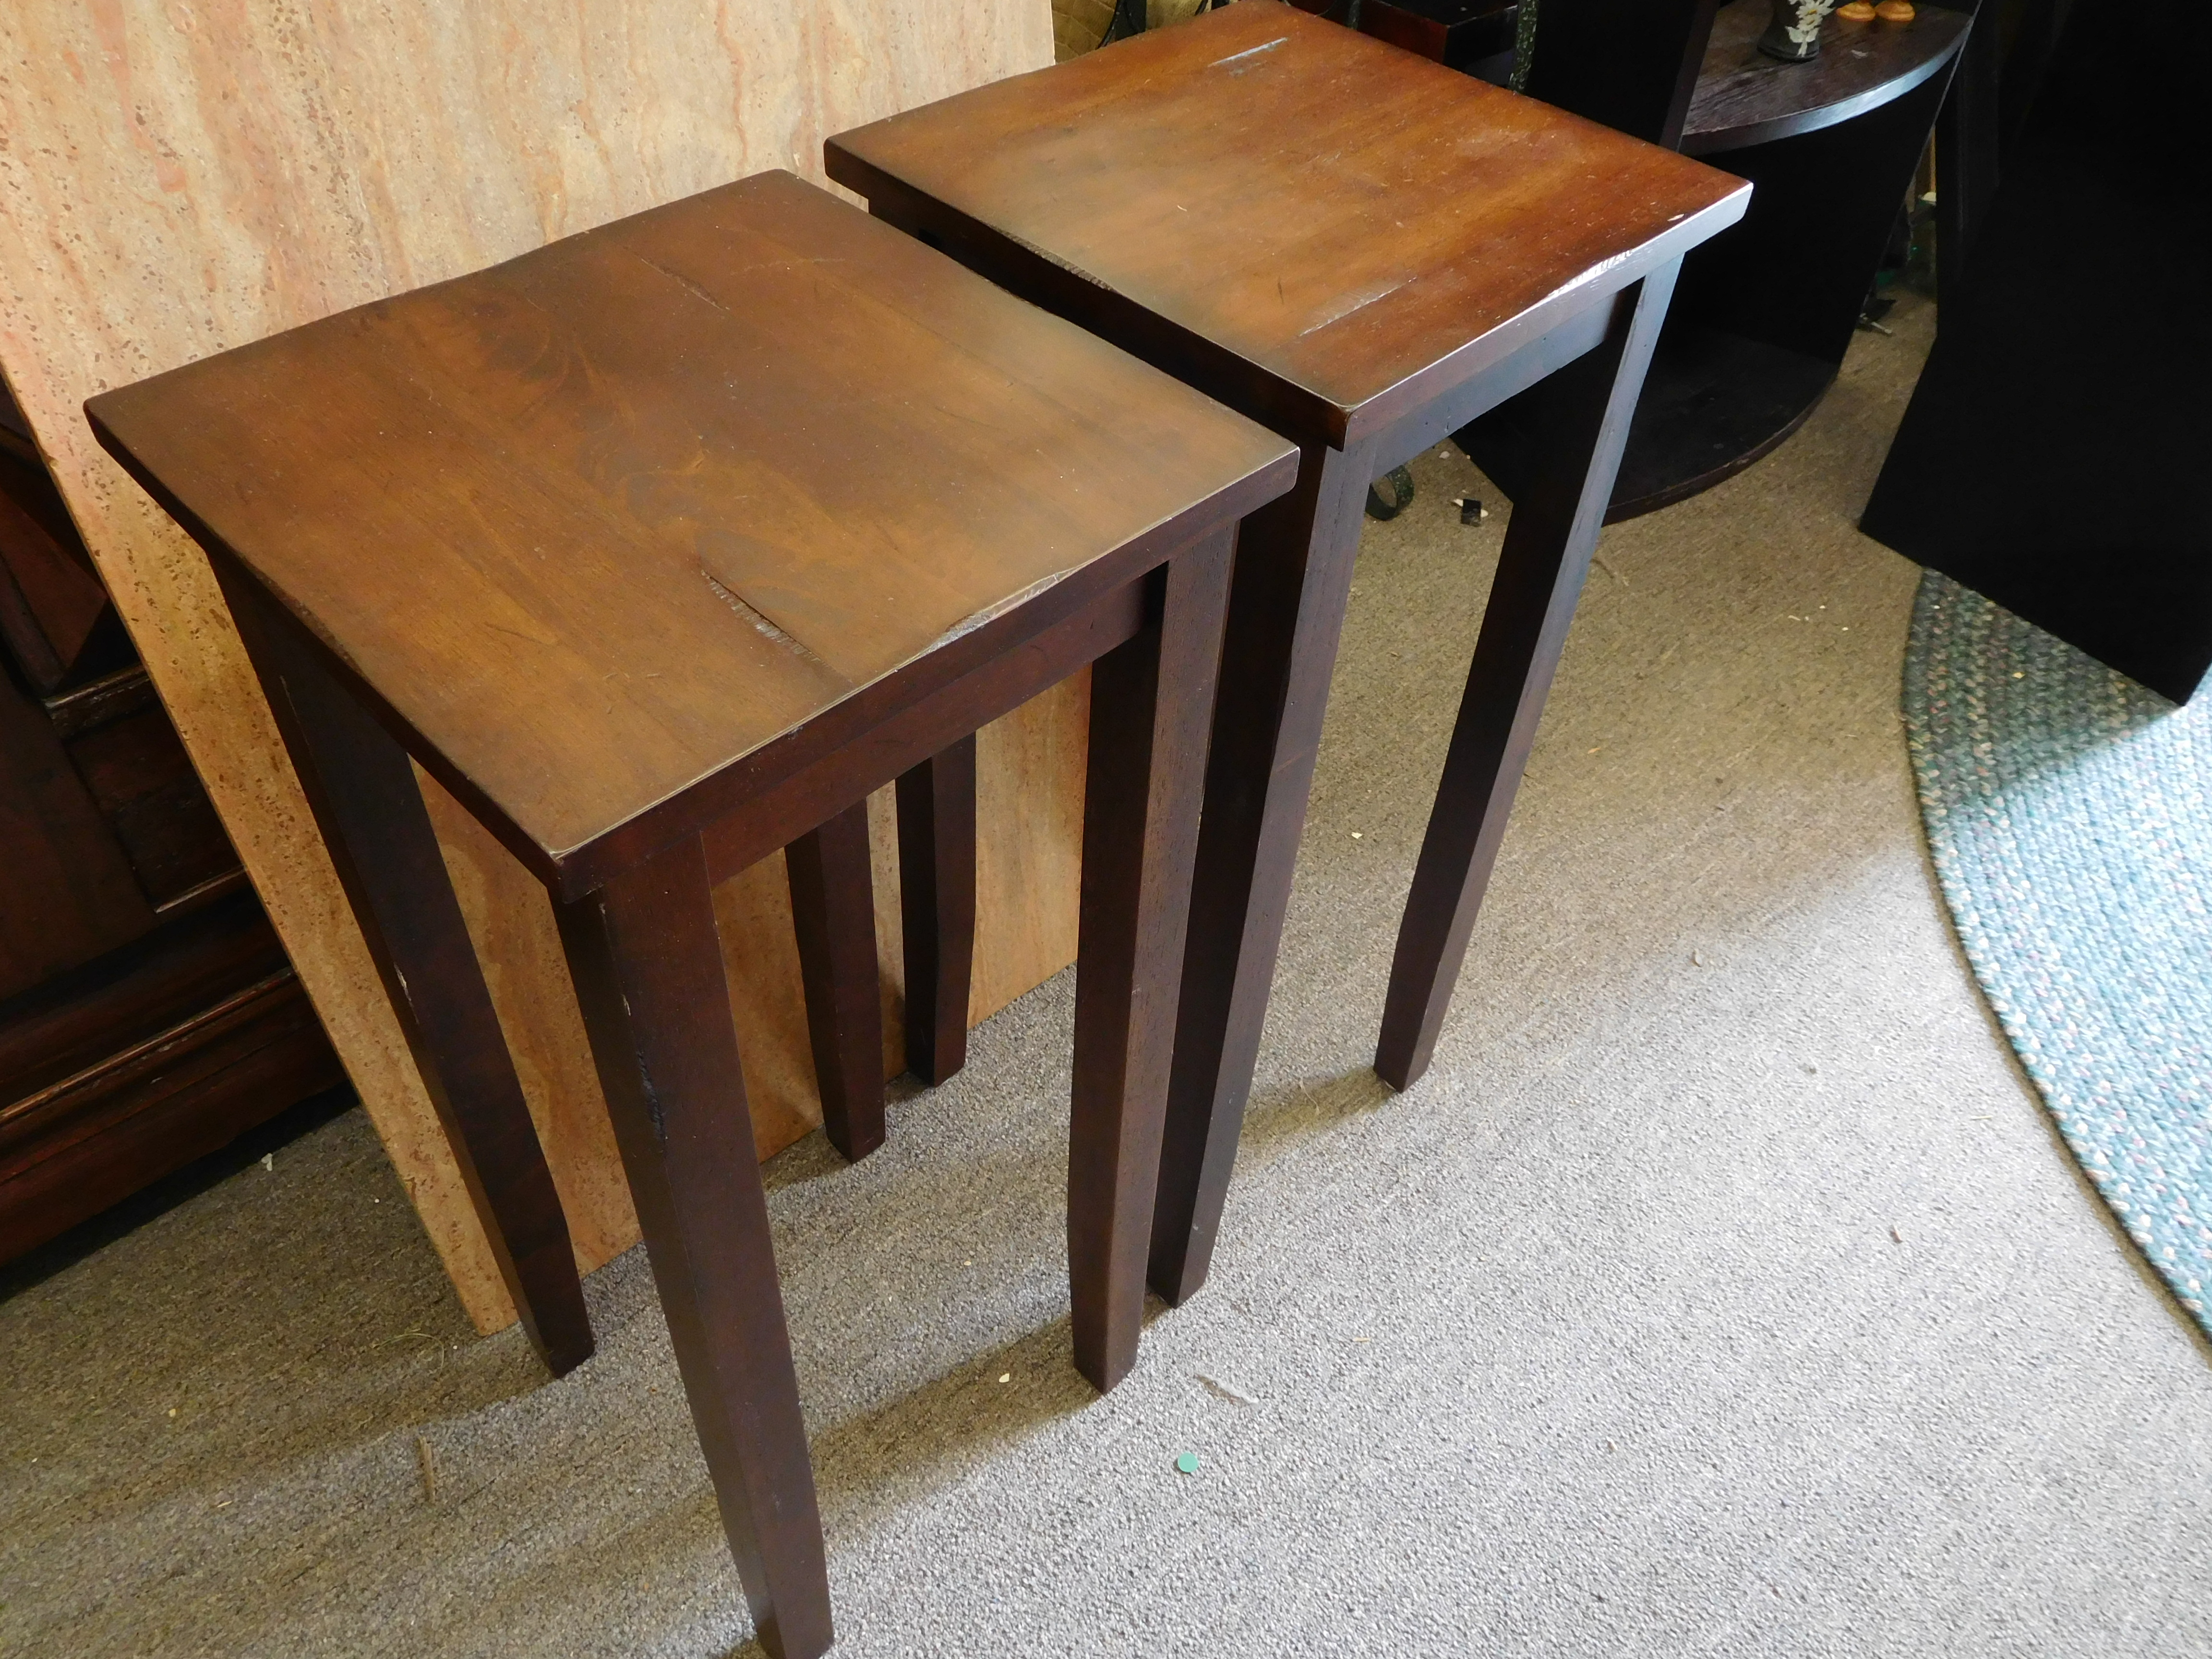 Modern Dark Wood End Table with Square Top and Tapered Legs